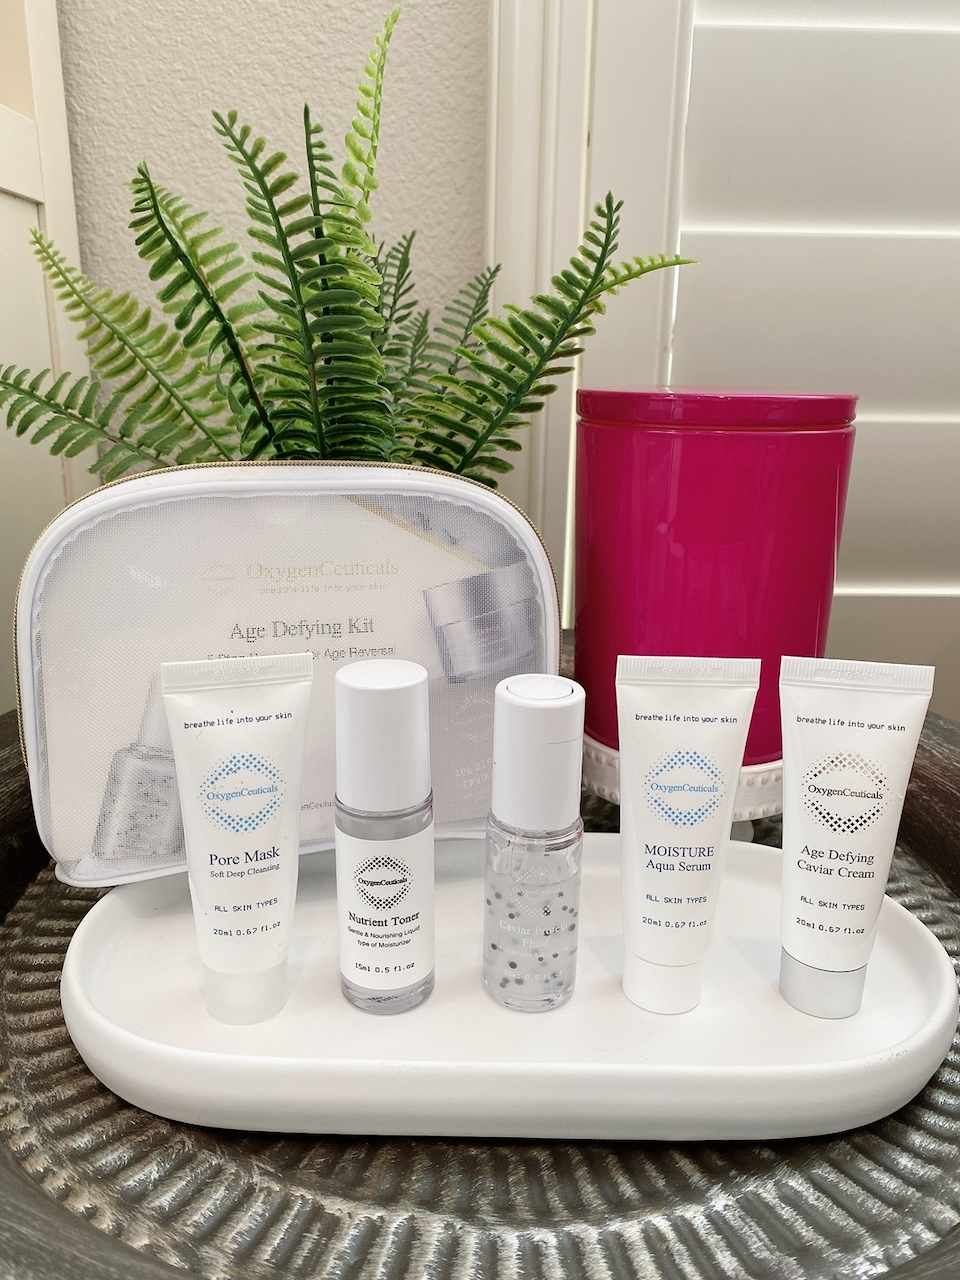 OxygenCeuticals anti-aging skincare products